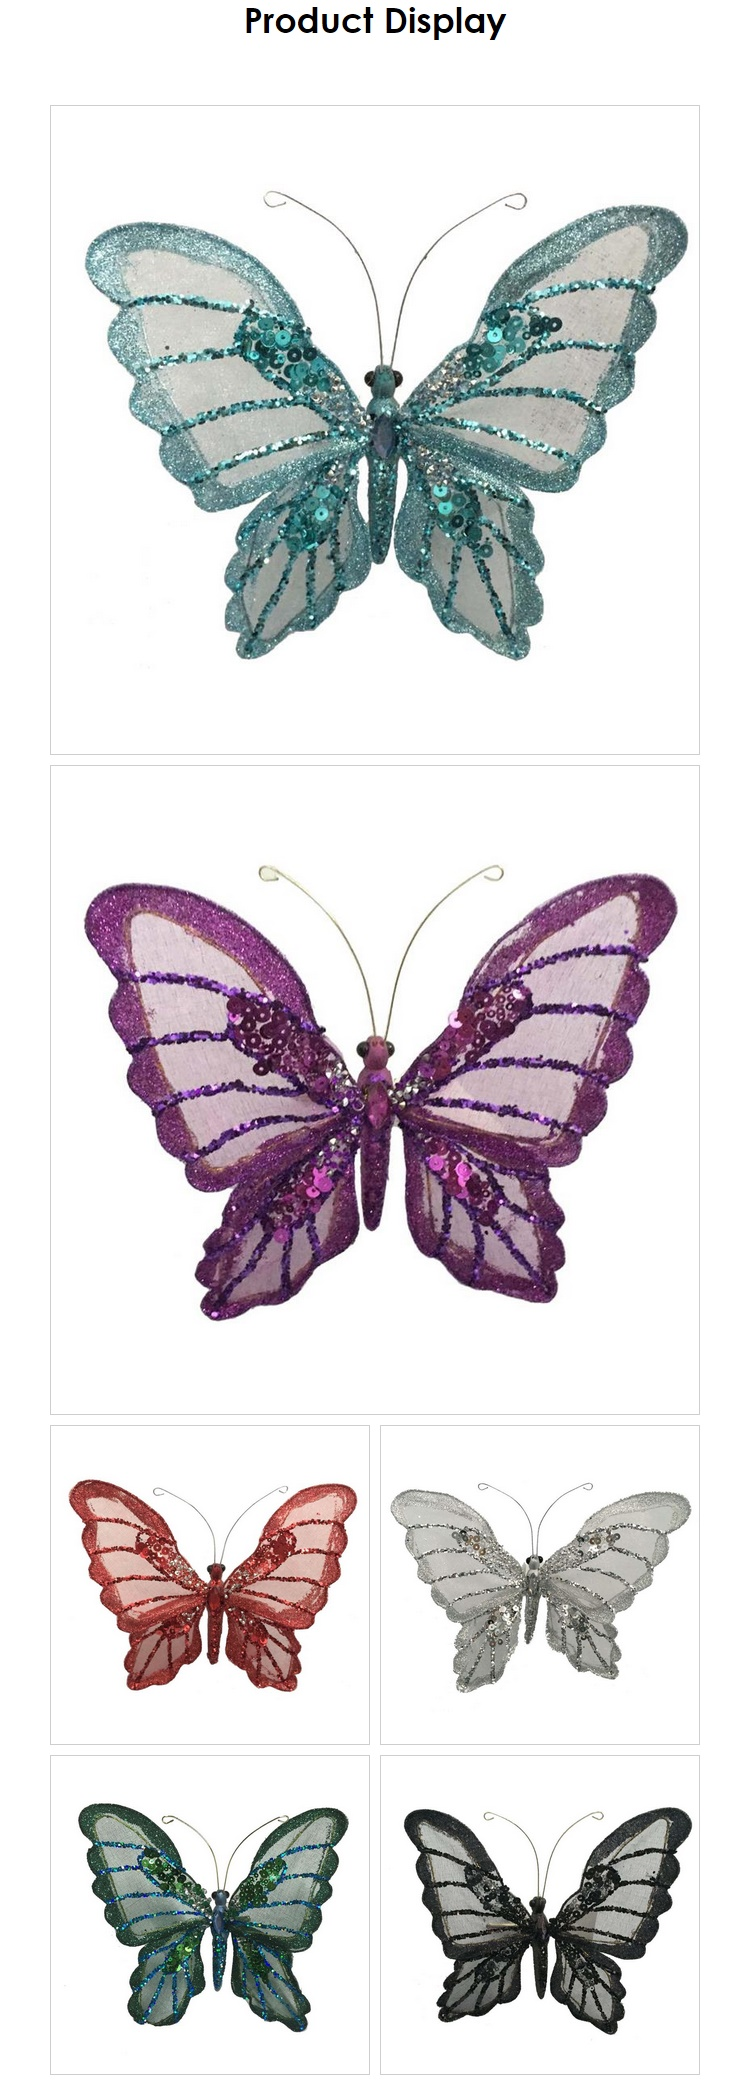 Decorative Butterfly With Clip Christmas Glitter Butterfly For Window Display Buy Decorative Butterfly Christmas Butterfly Glitter Christmas